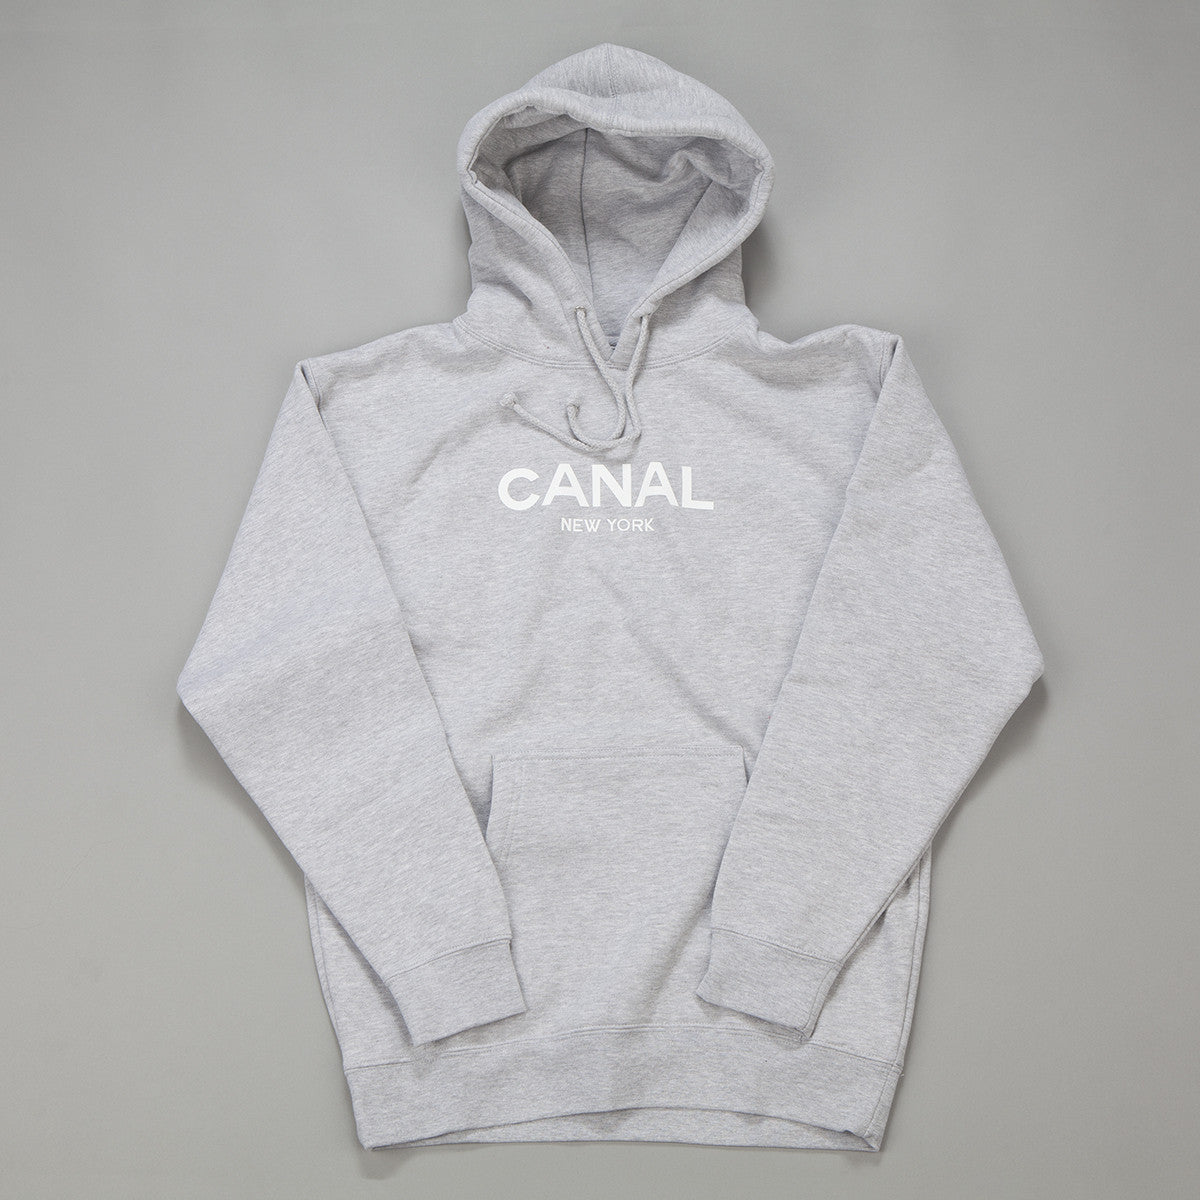 Canal New York Hooded Sweatshirt